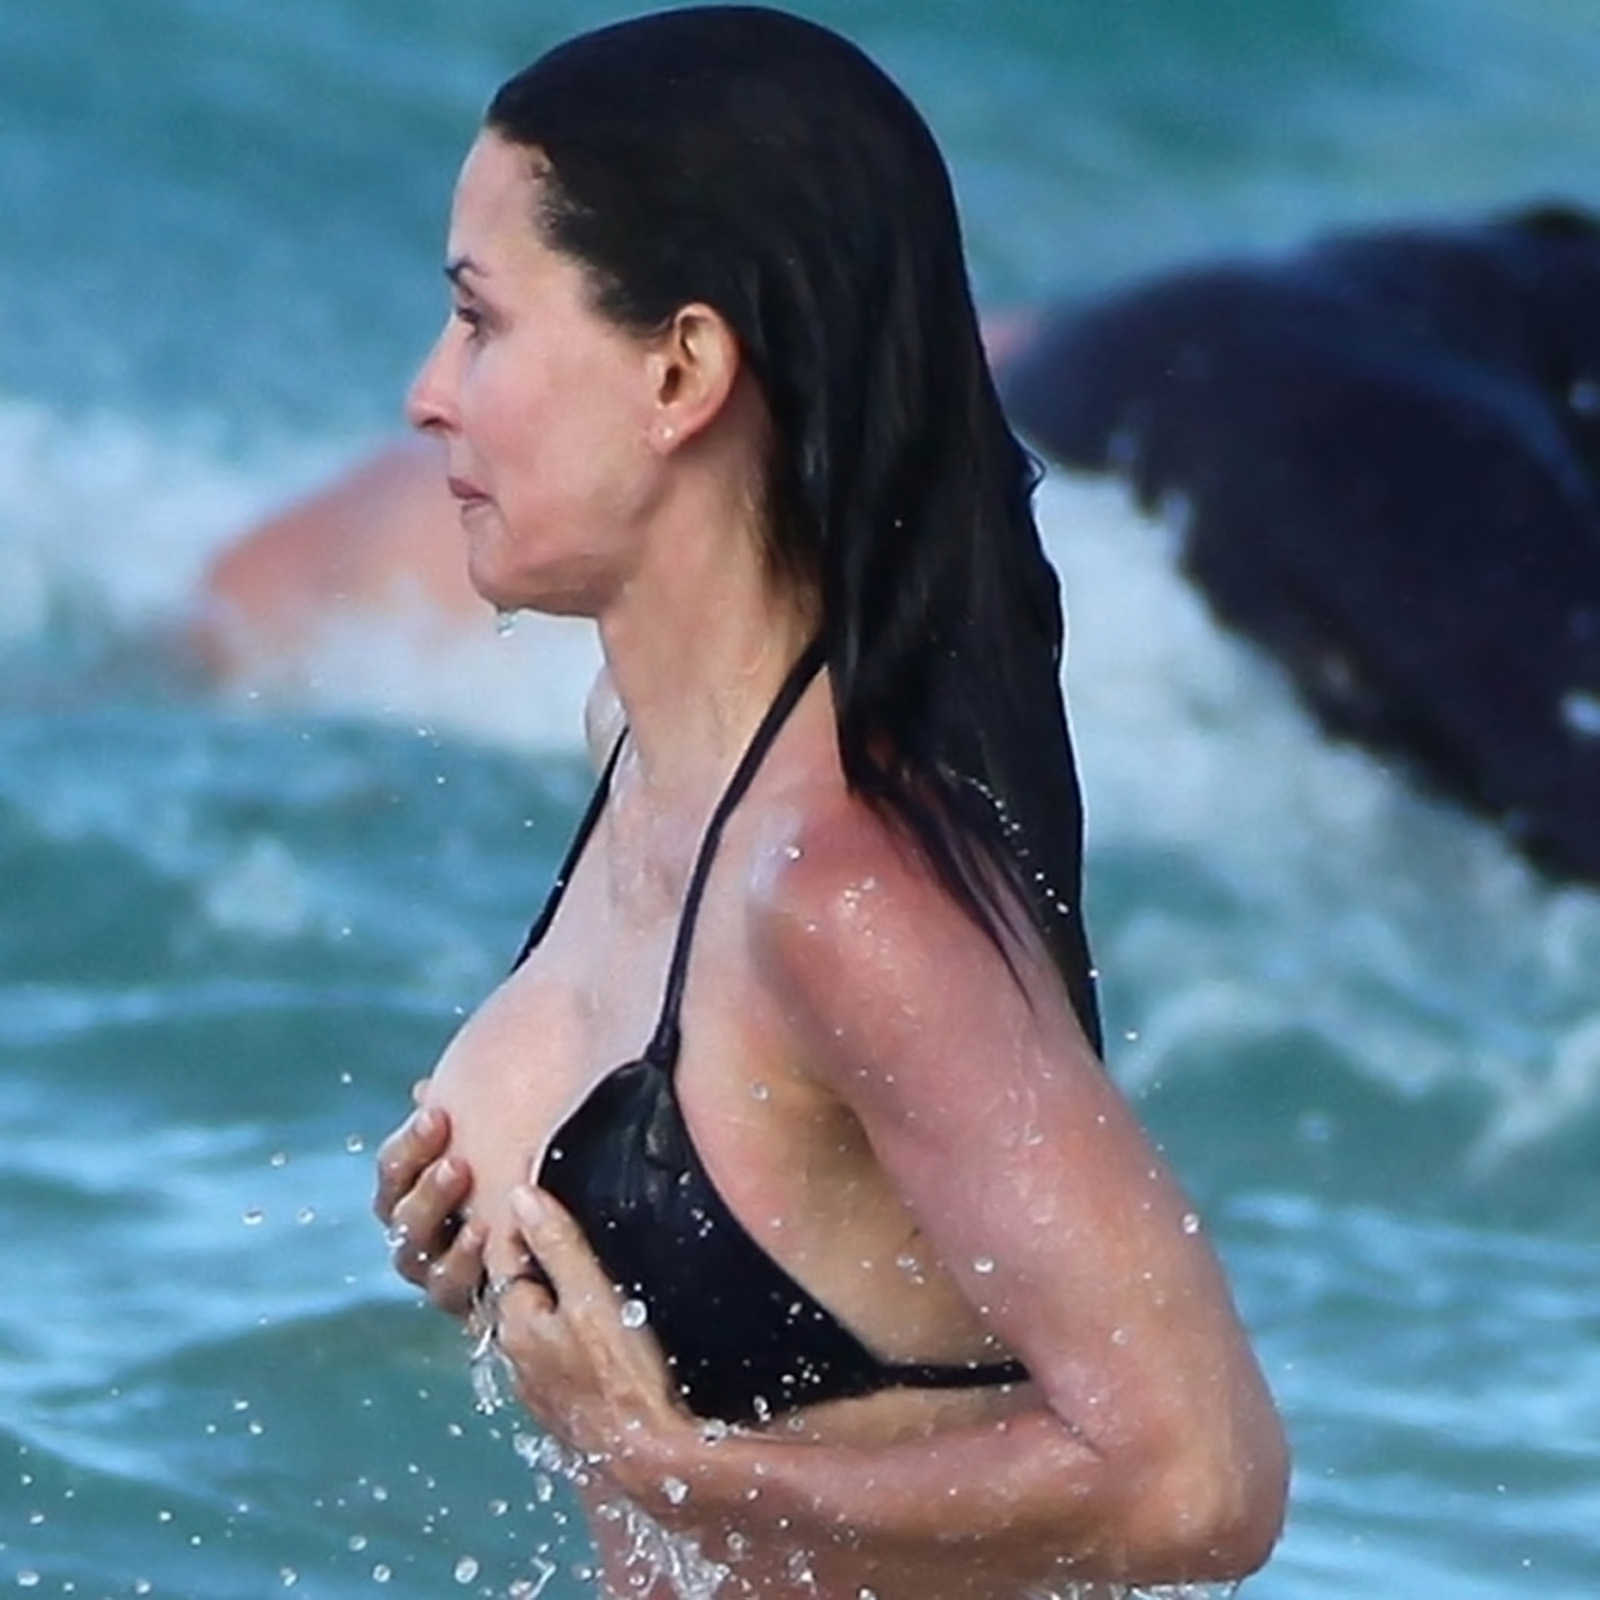 Tried this boob courteney cox shot she????